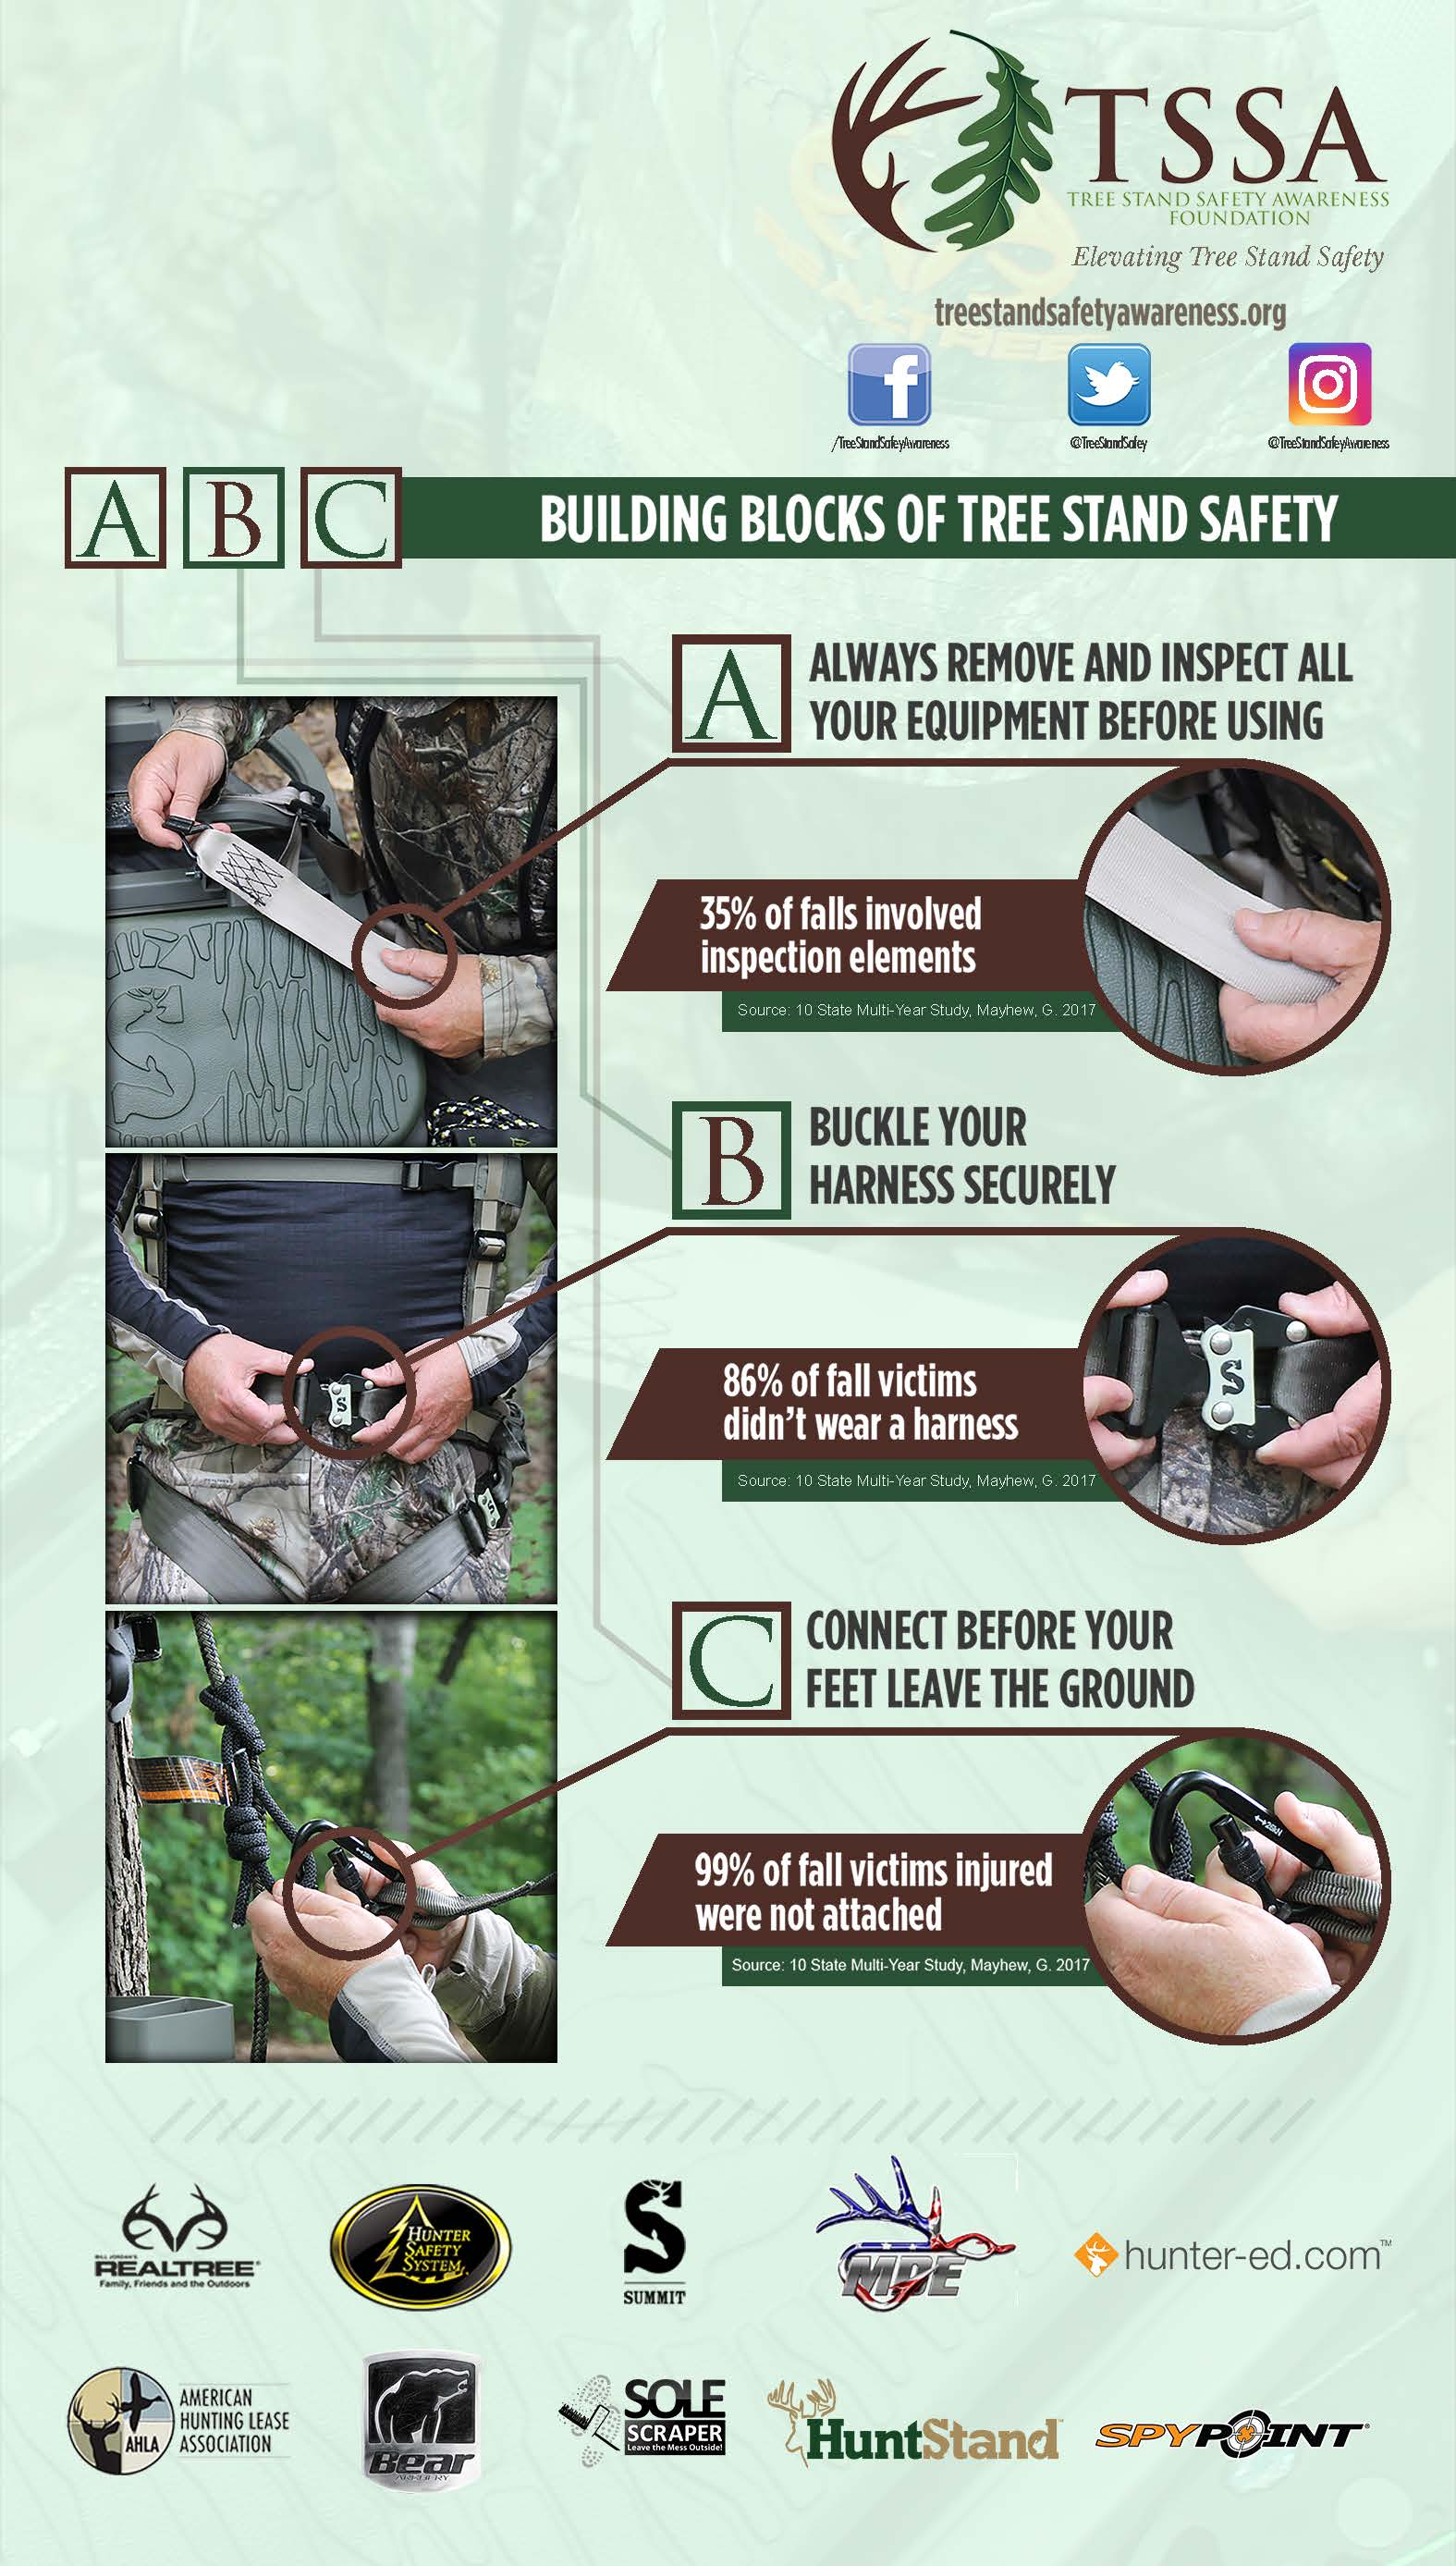 tree stand safety awareness tips